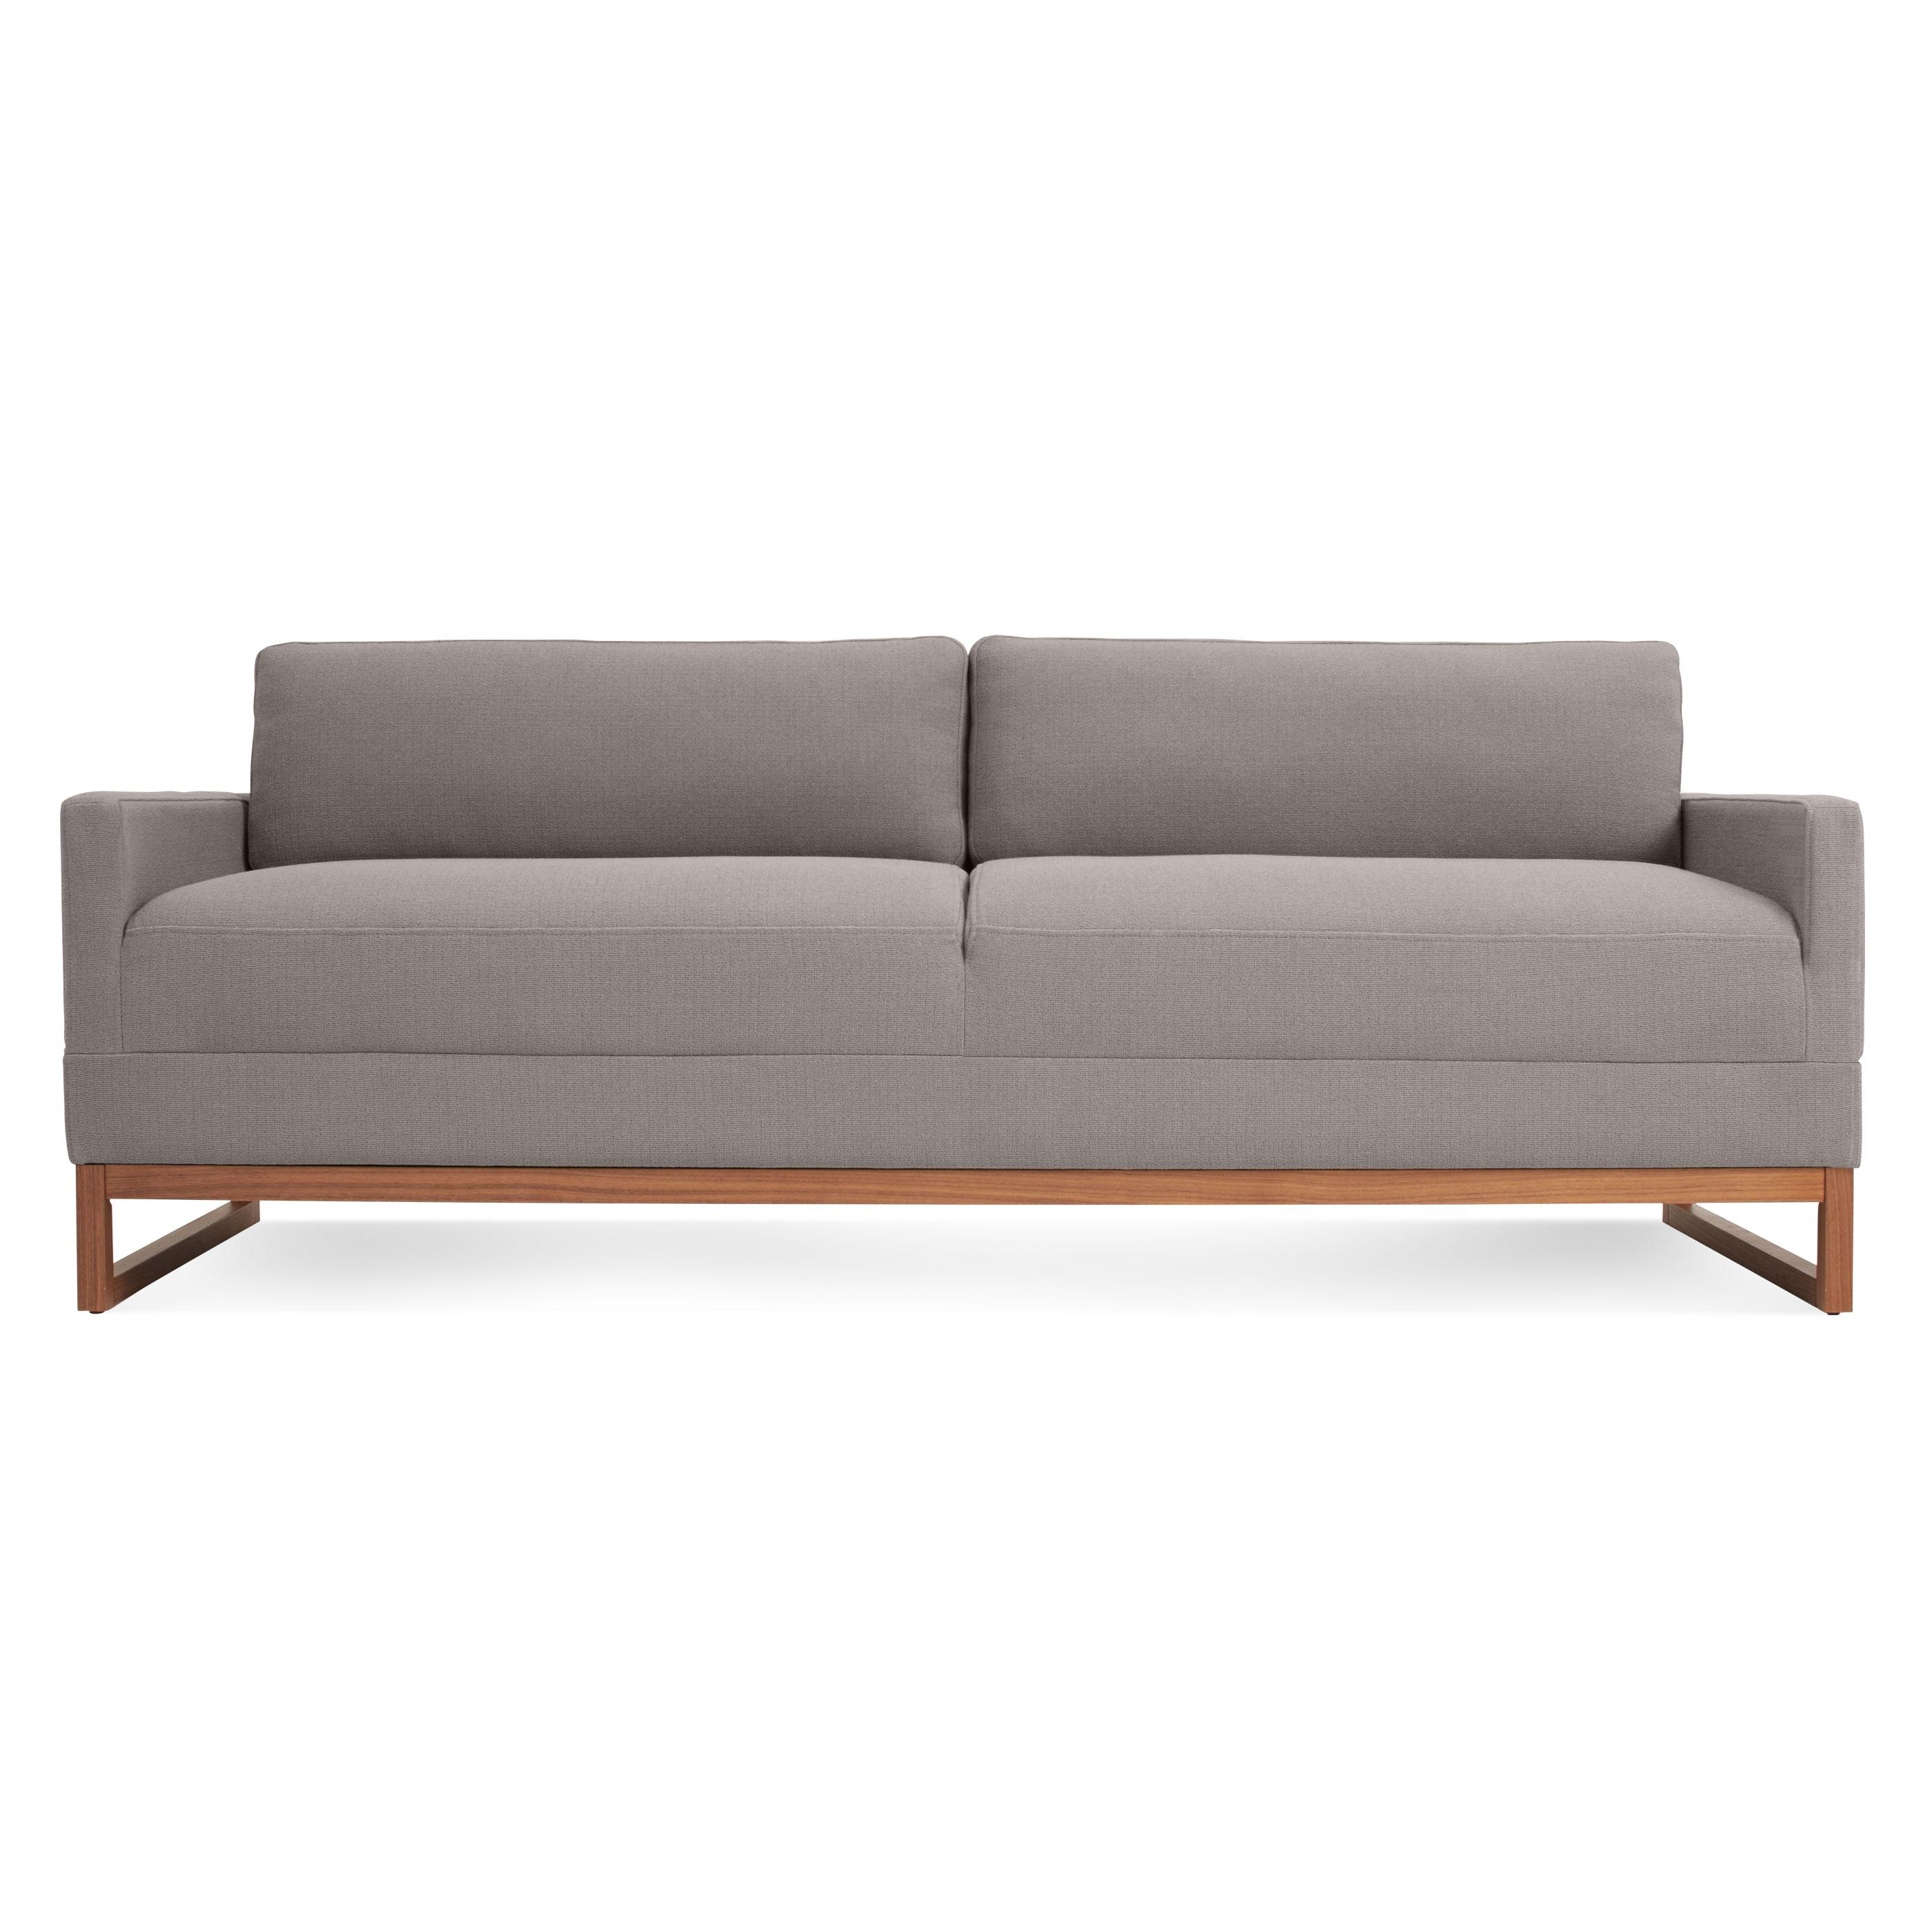 queen sofa bed sears compact 20 best collection of sleeper sofas ideas